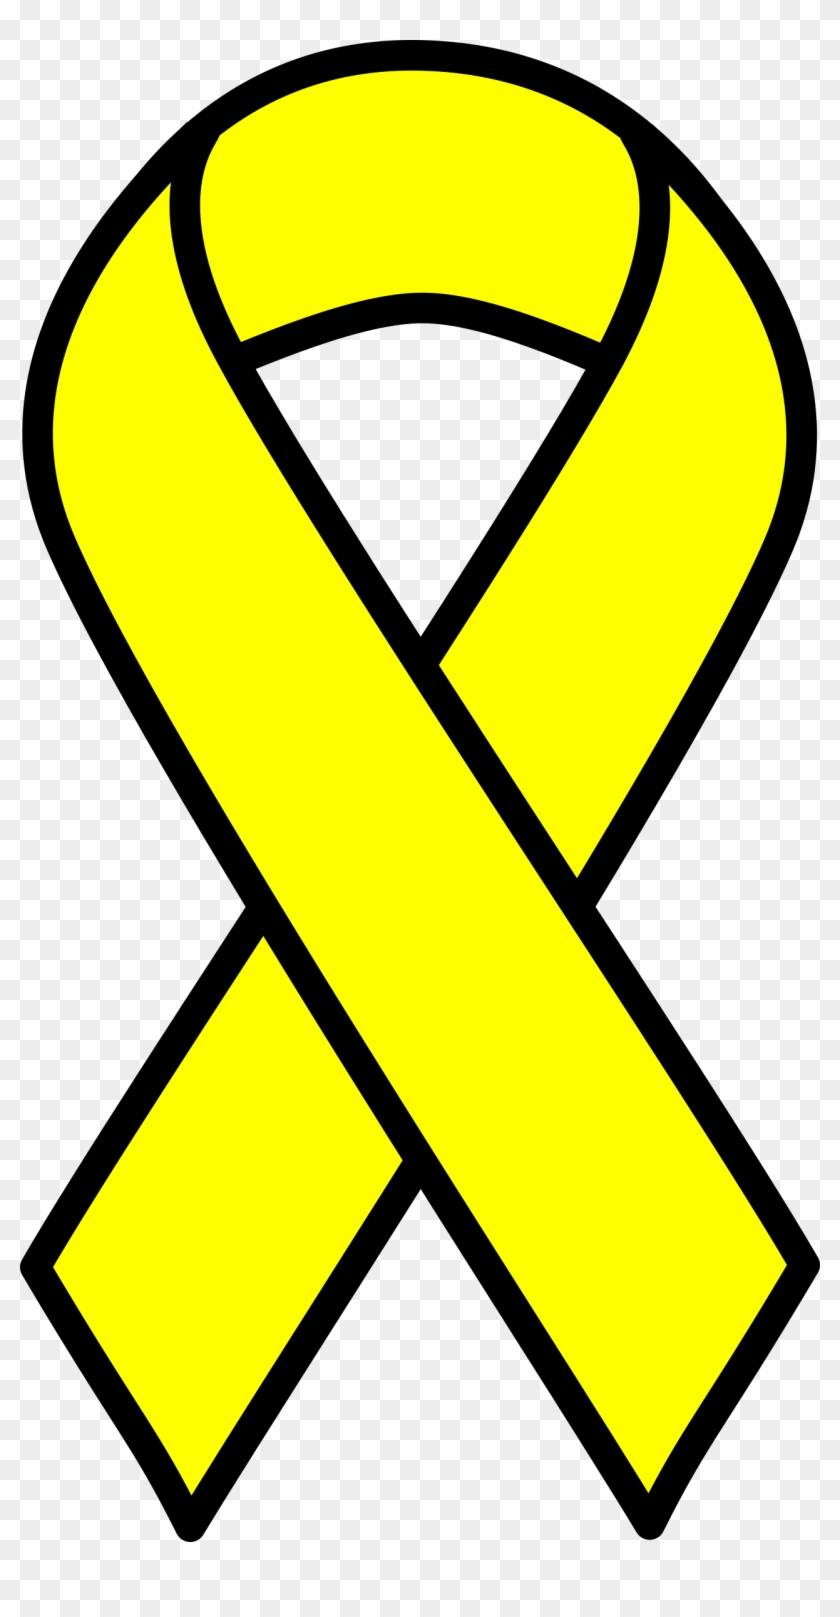 Yellow Cancer Ribbon Outline Breast Cancer Ribbon Clipart